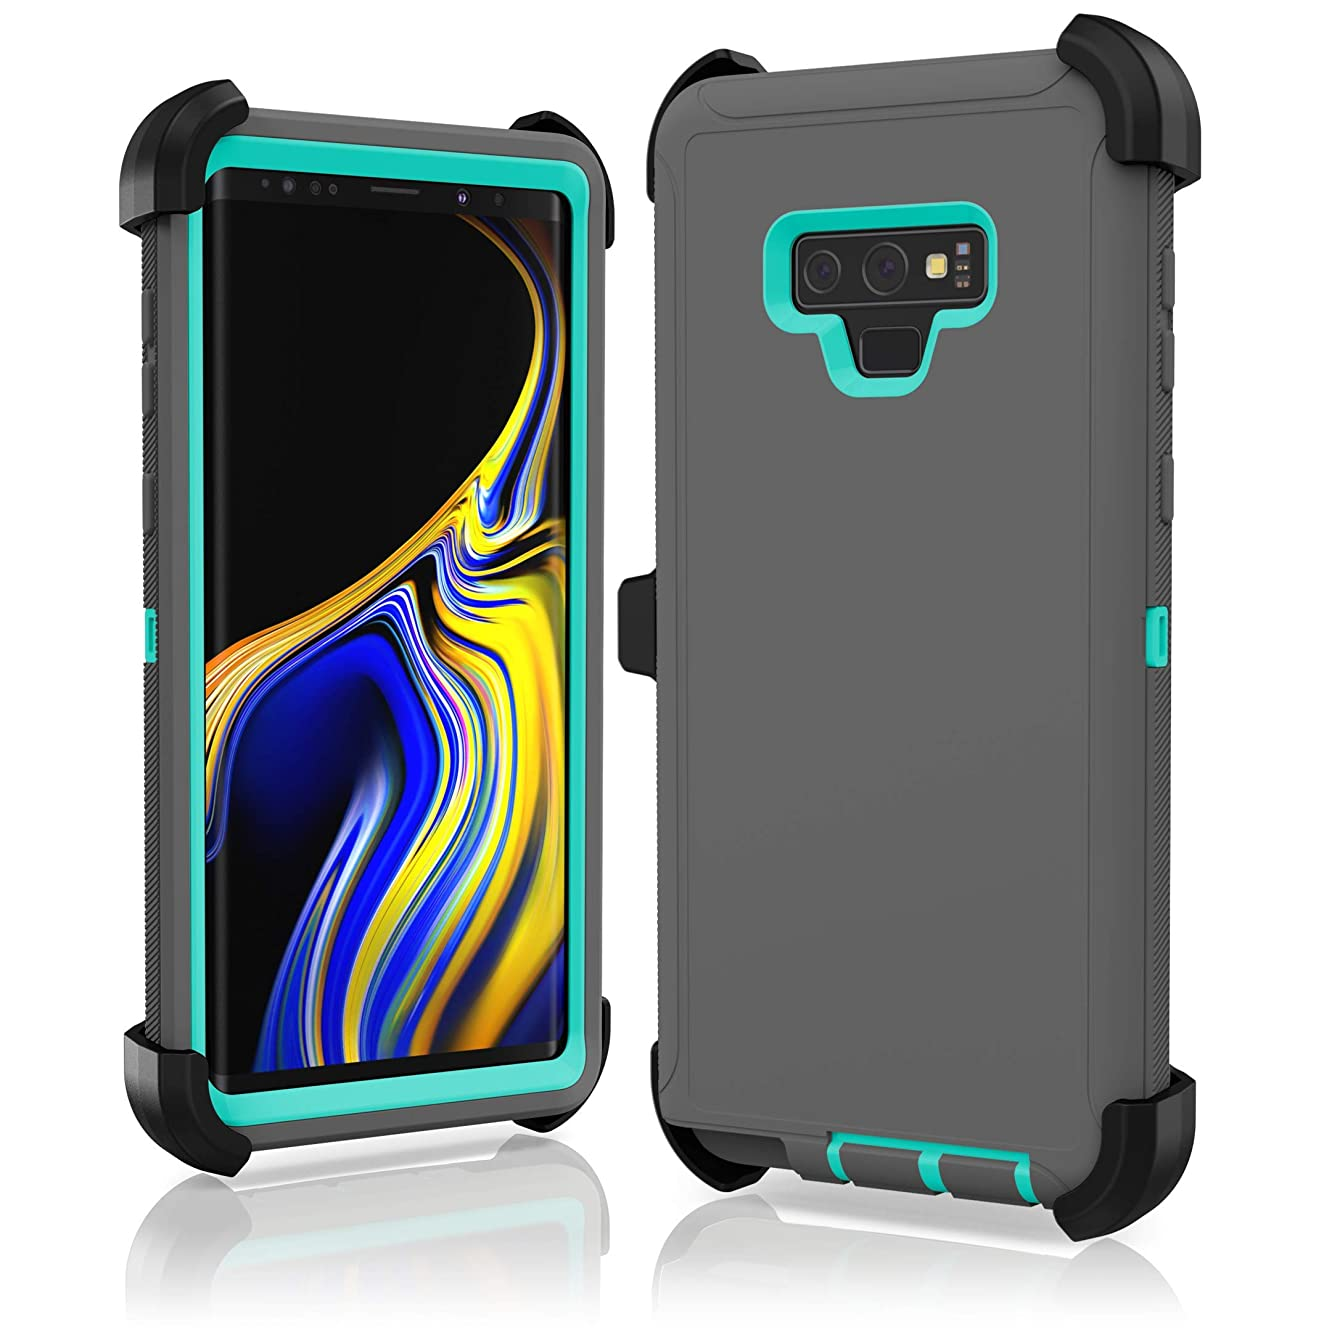 Protective Shockproof Hybrid Hard Belt Clip Case Cover for Samsung Galaxy Note 9 - Heavy Duty Design - Interchangeable Colors … (Grey Teal)